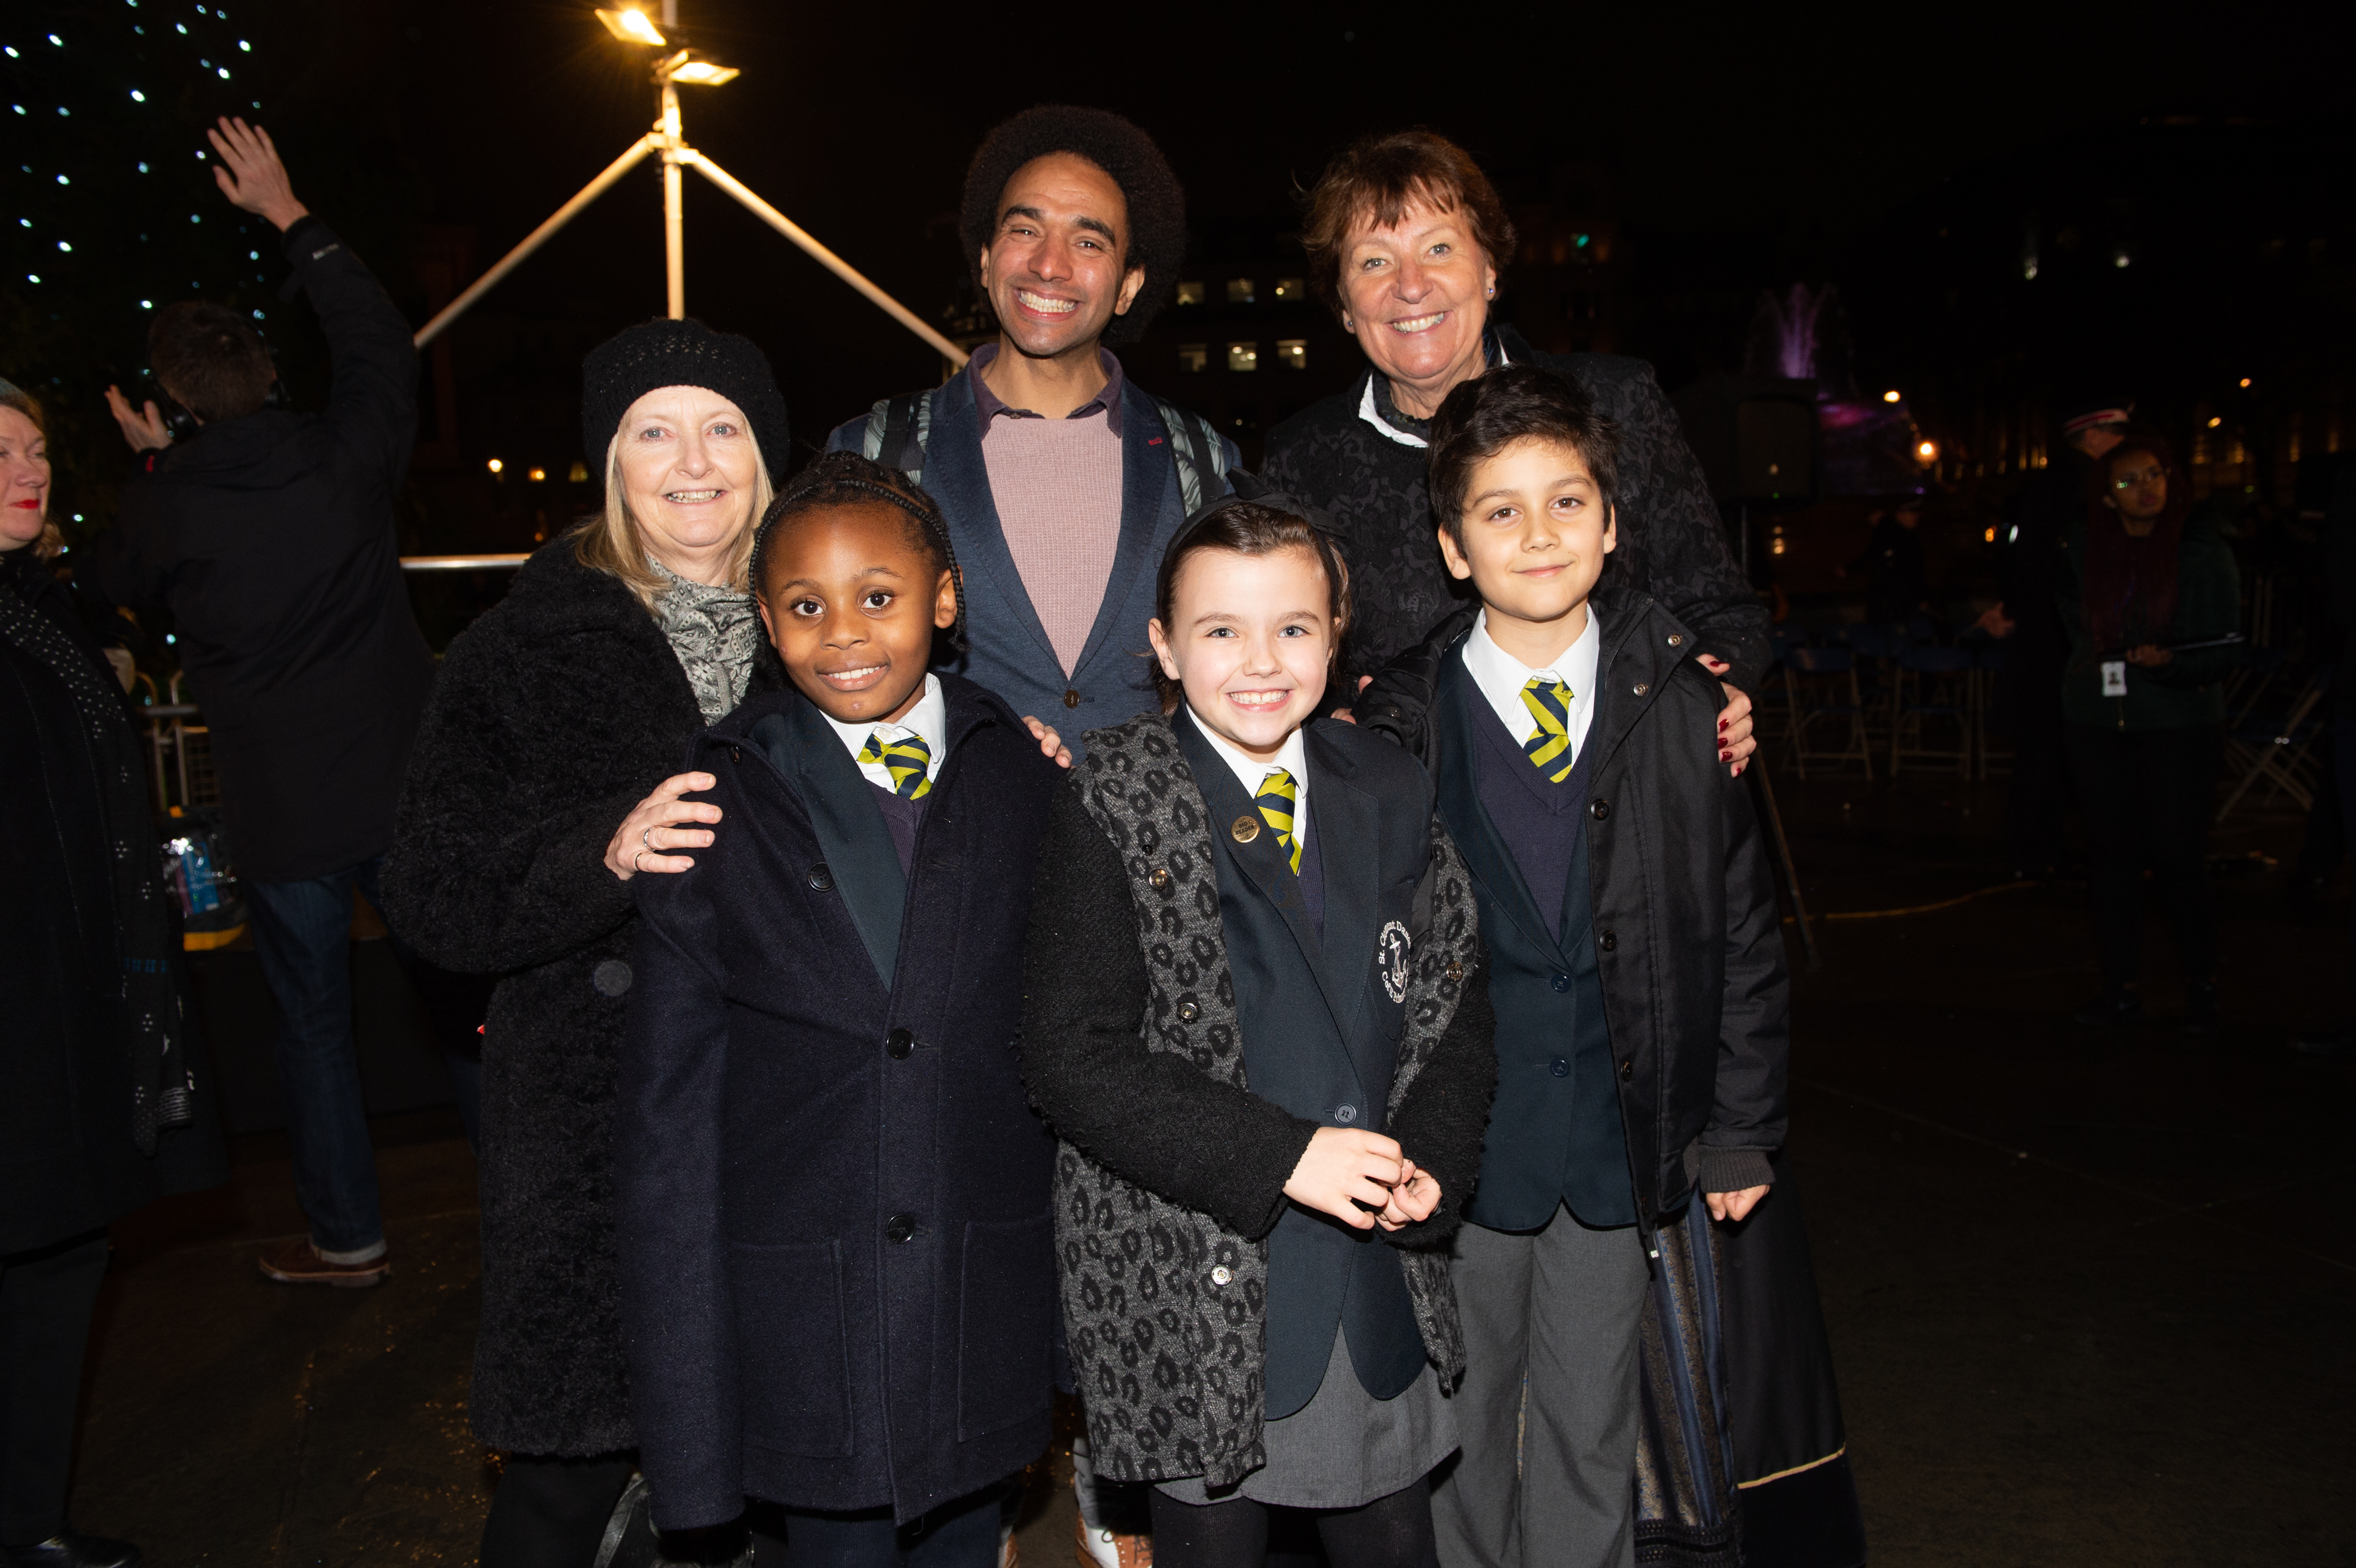 poets, mayor and children stand in front of the trafalgar square Christmas tree smiling